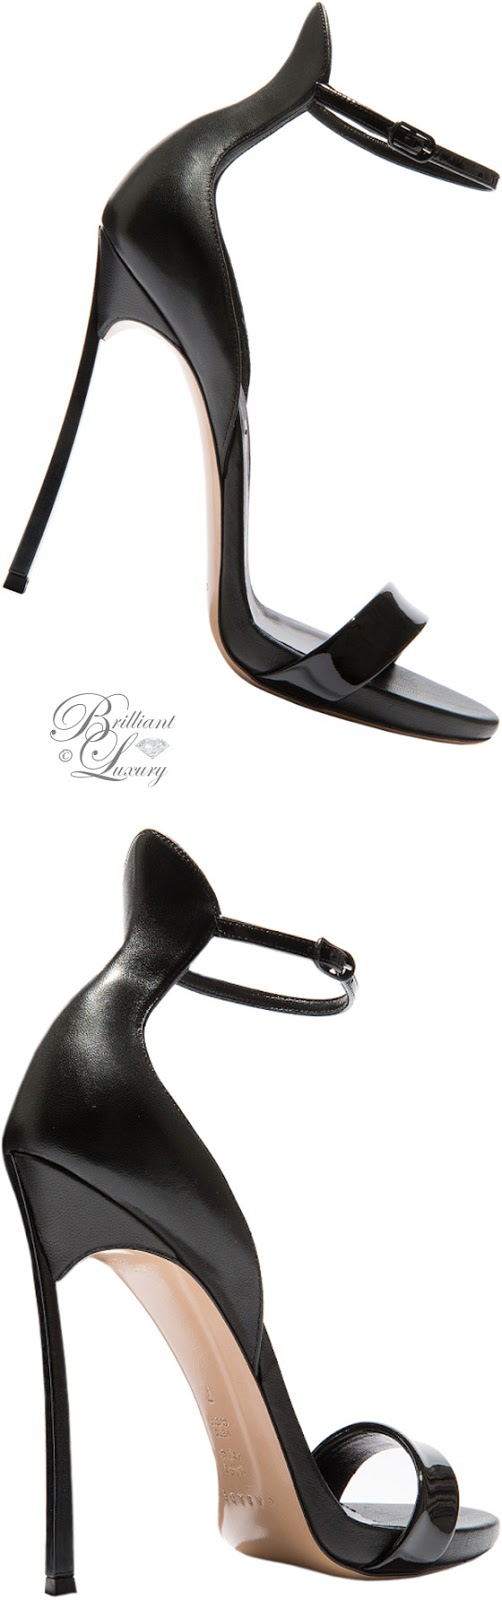 Brilliant Luxury ♦ Fall in ~ Casadei Blade sandals in black